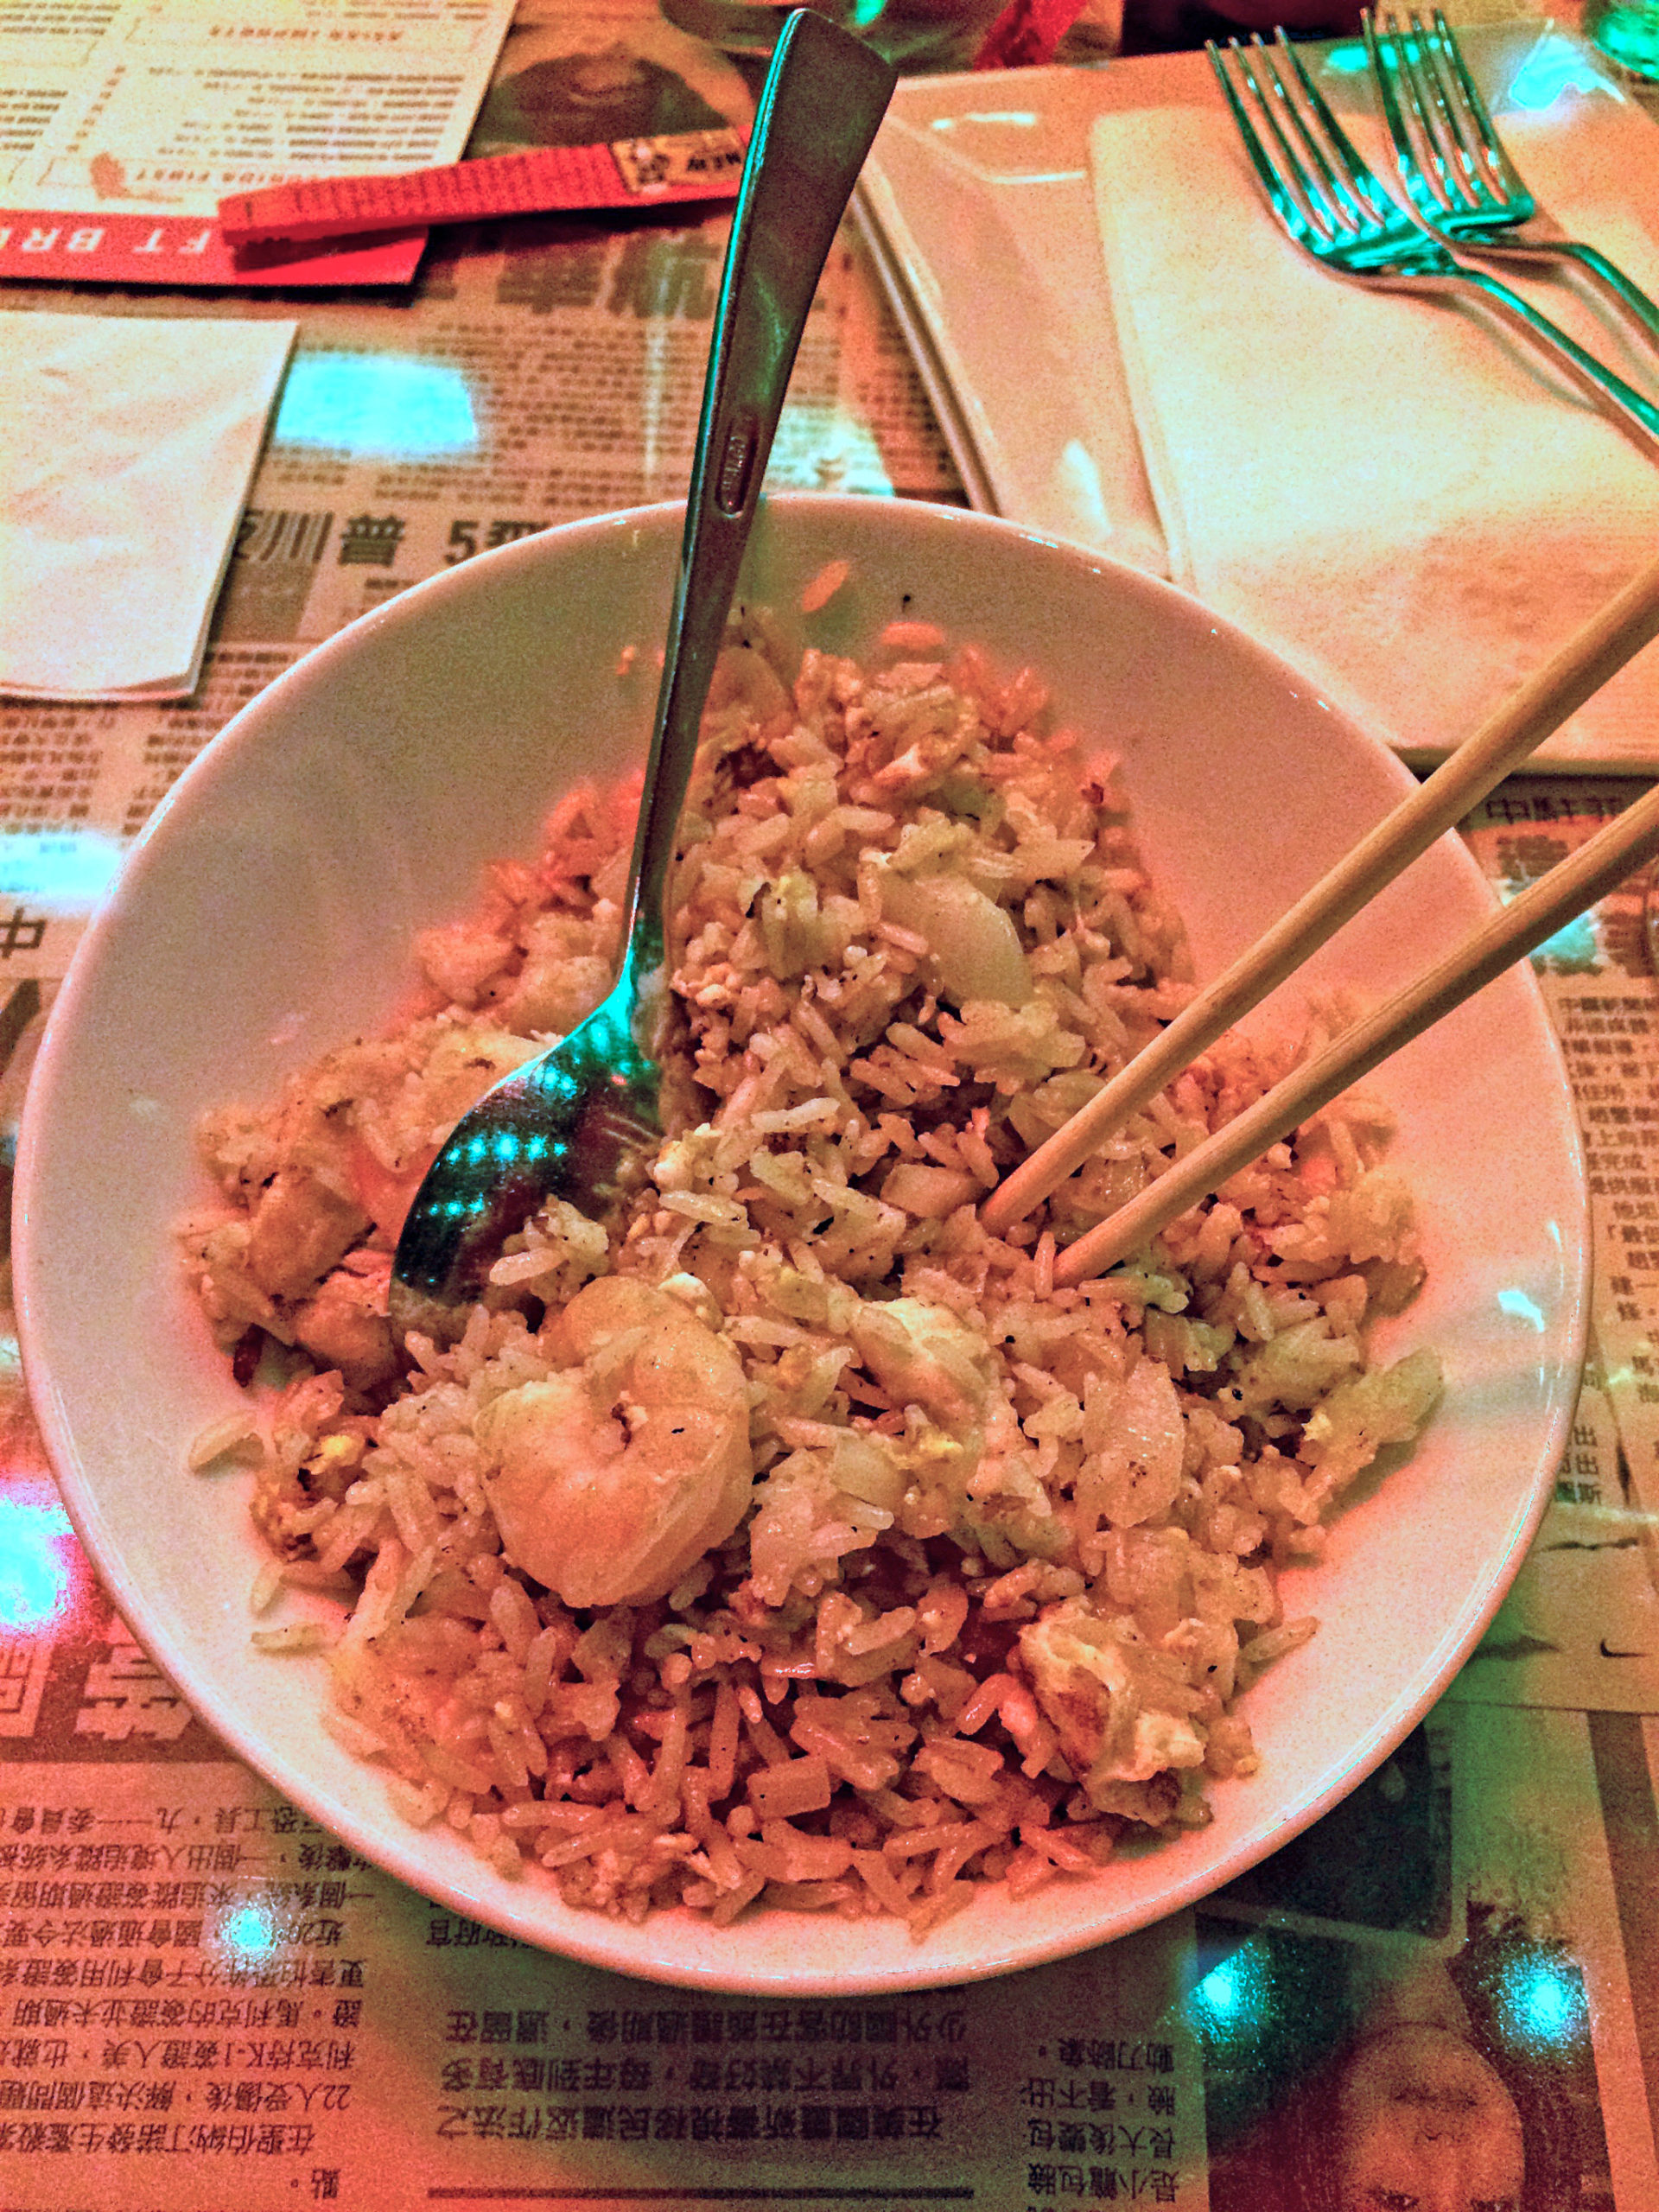 Gluten-Free Review of Hawkers Asian Street Fare